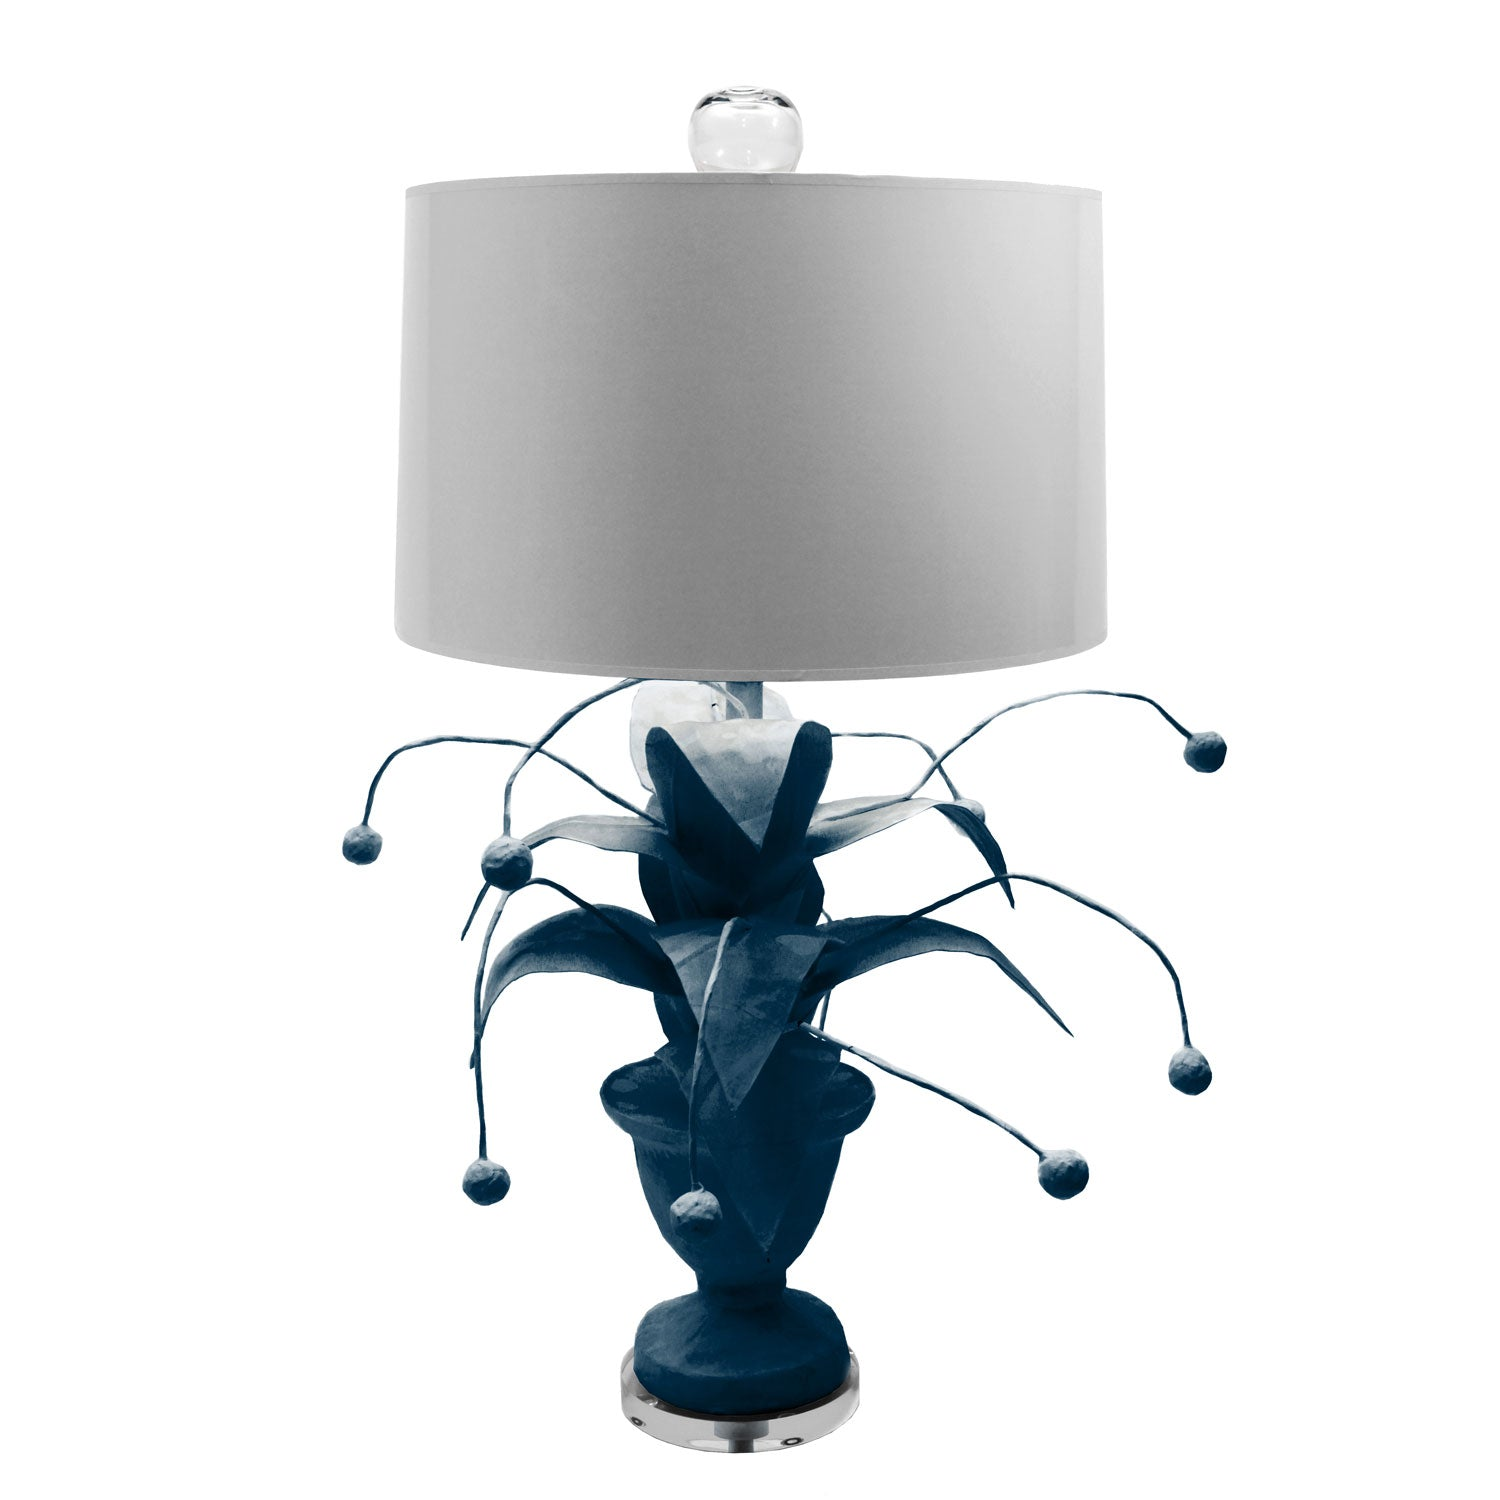 navy blue papier mache plant lamp with berries, Crunchberry